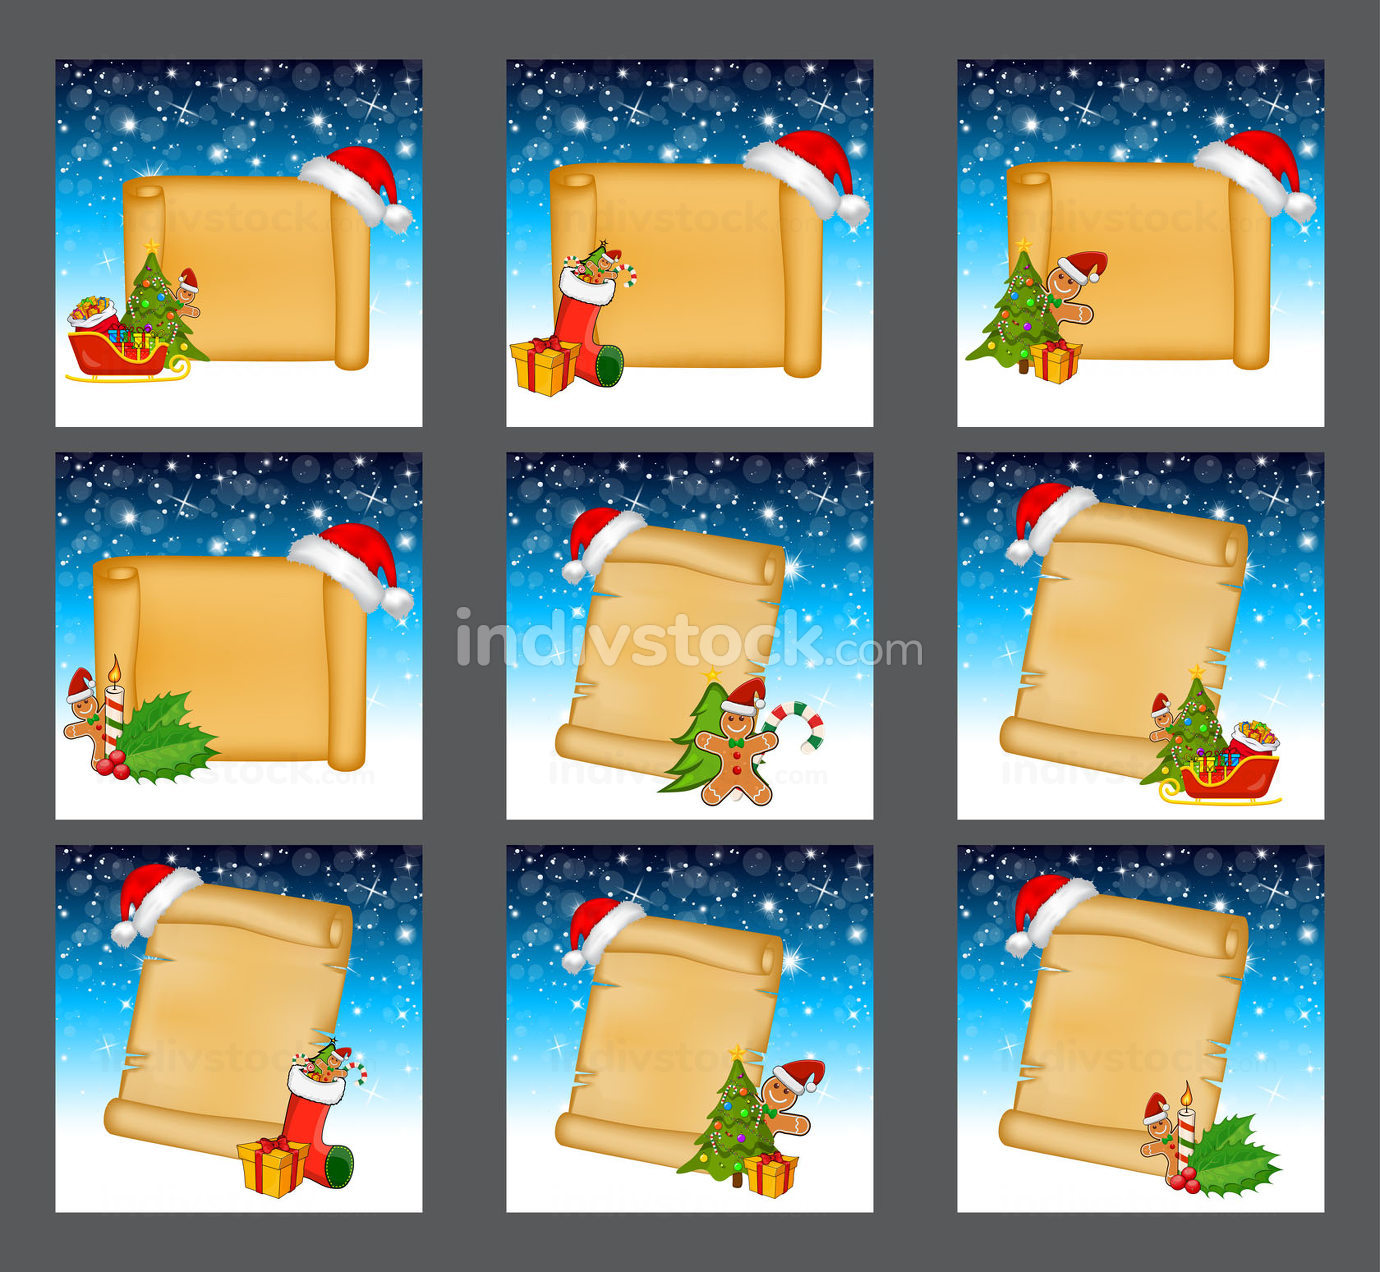 Christmas backgrounds with paper scroll set. Collection of winter old parchment decorated with christmas tree, gingerbread man, santa hat etc. Great design for christmas card or invitation.